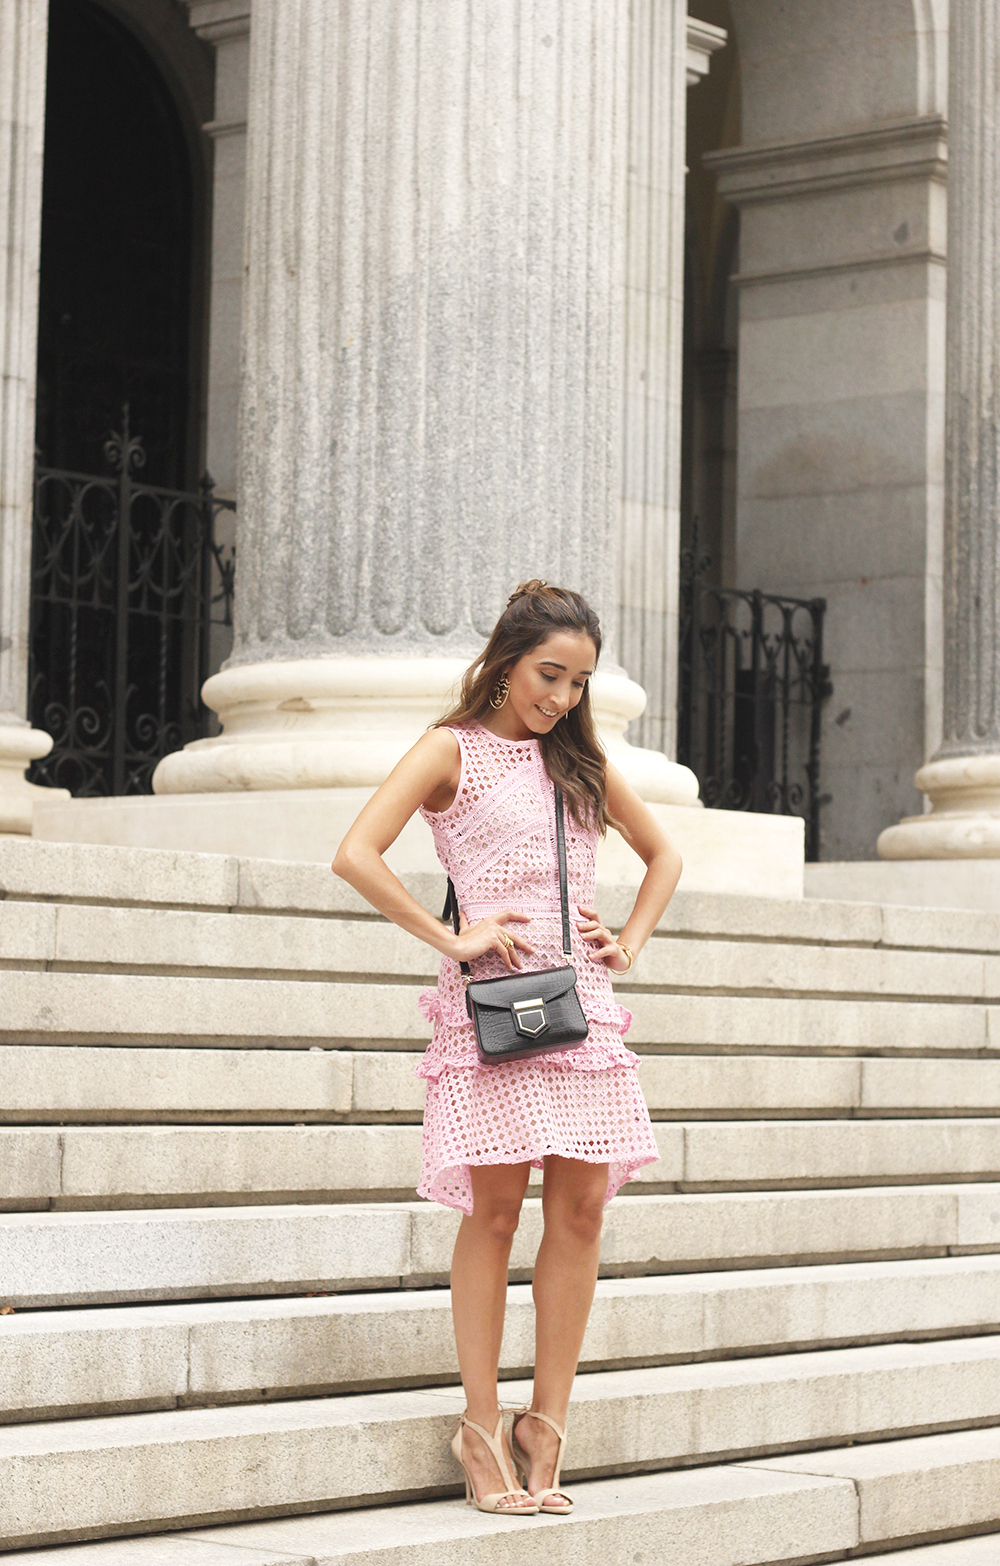 Pink dress summer givenchy bag nude heels outfit girl style03